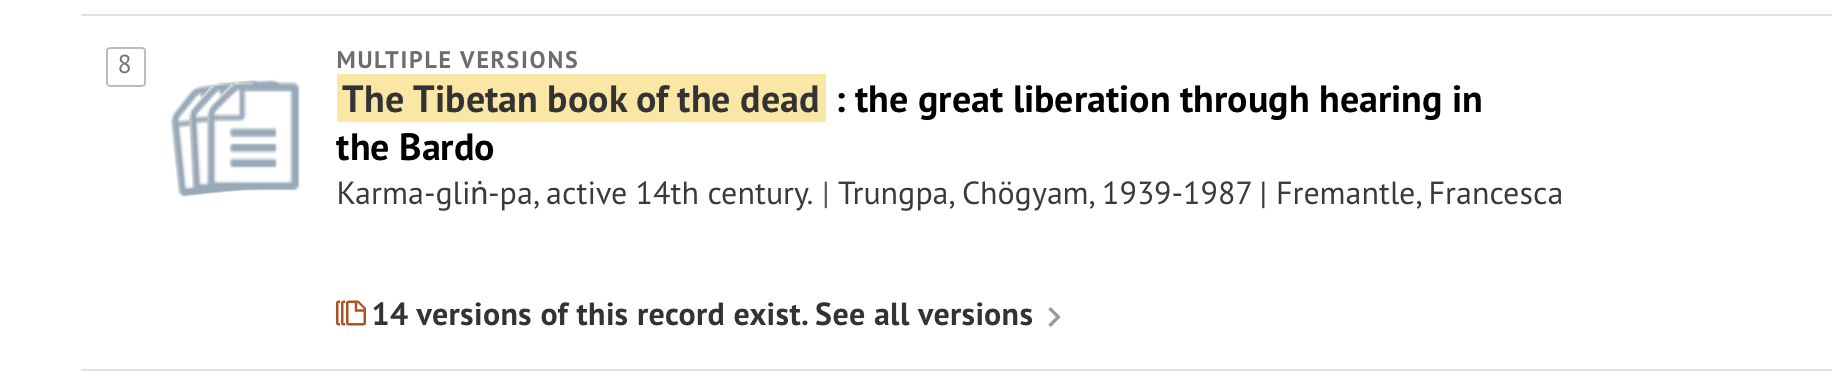 Oxford University's search results for Book of the Dead